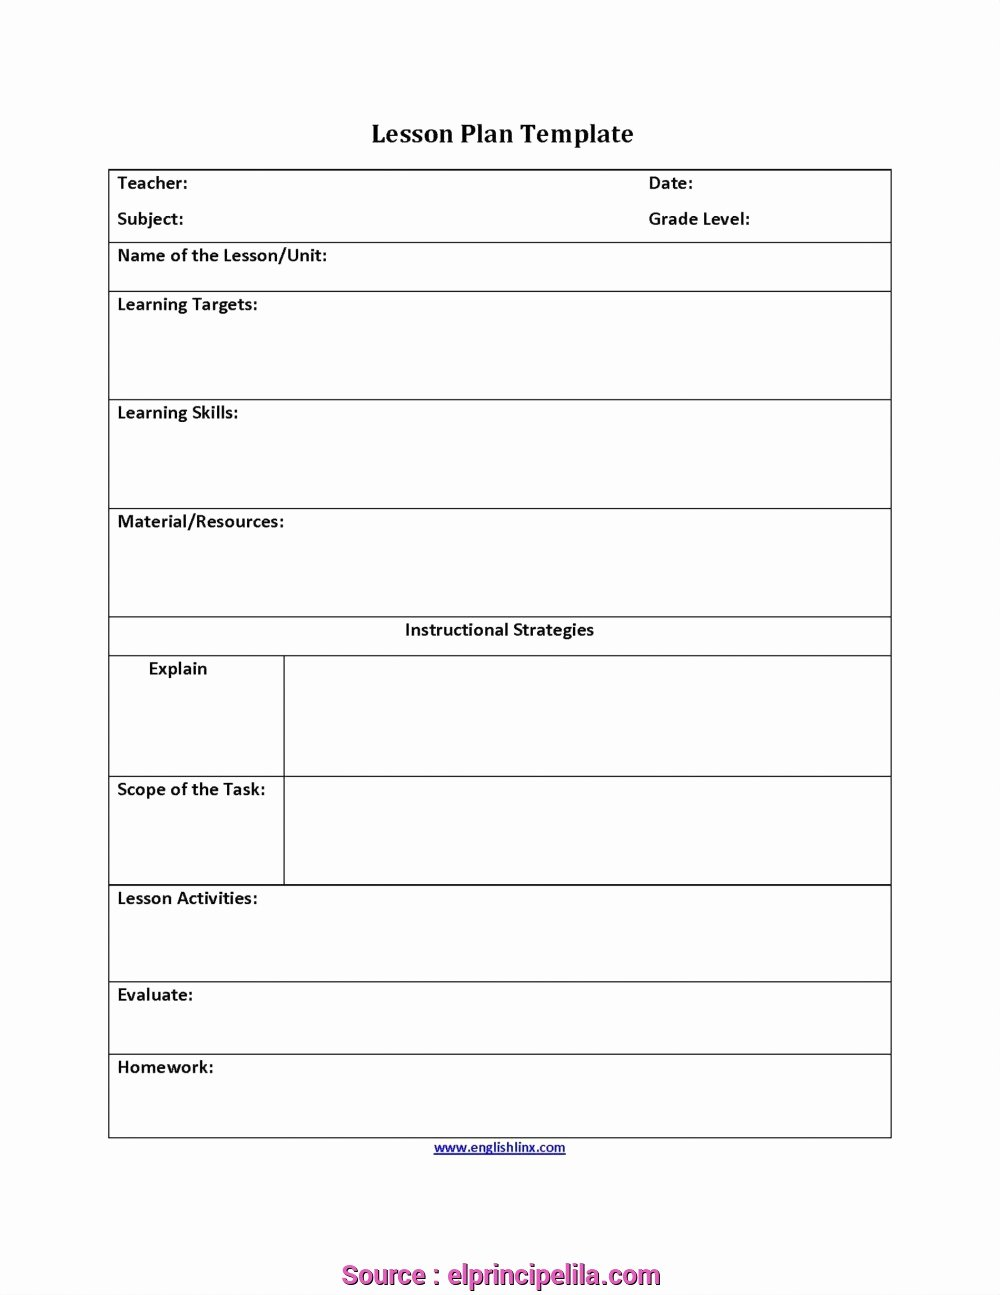 Physical Education Lesson Plan Template New 6 Professional Physical Education Lesson Plans Doc S